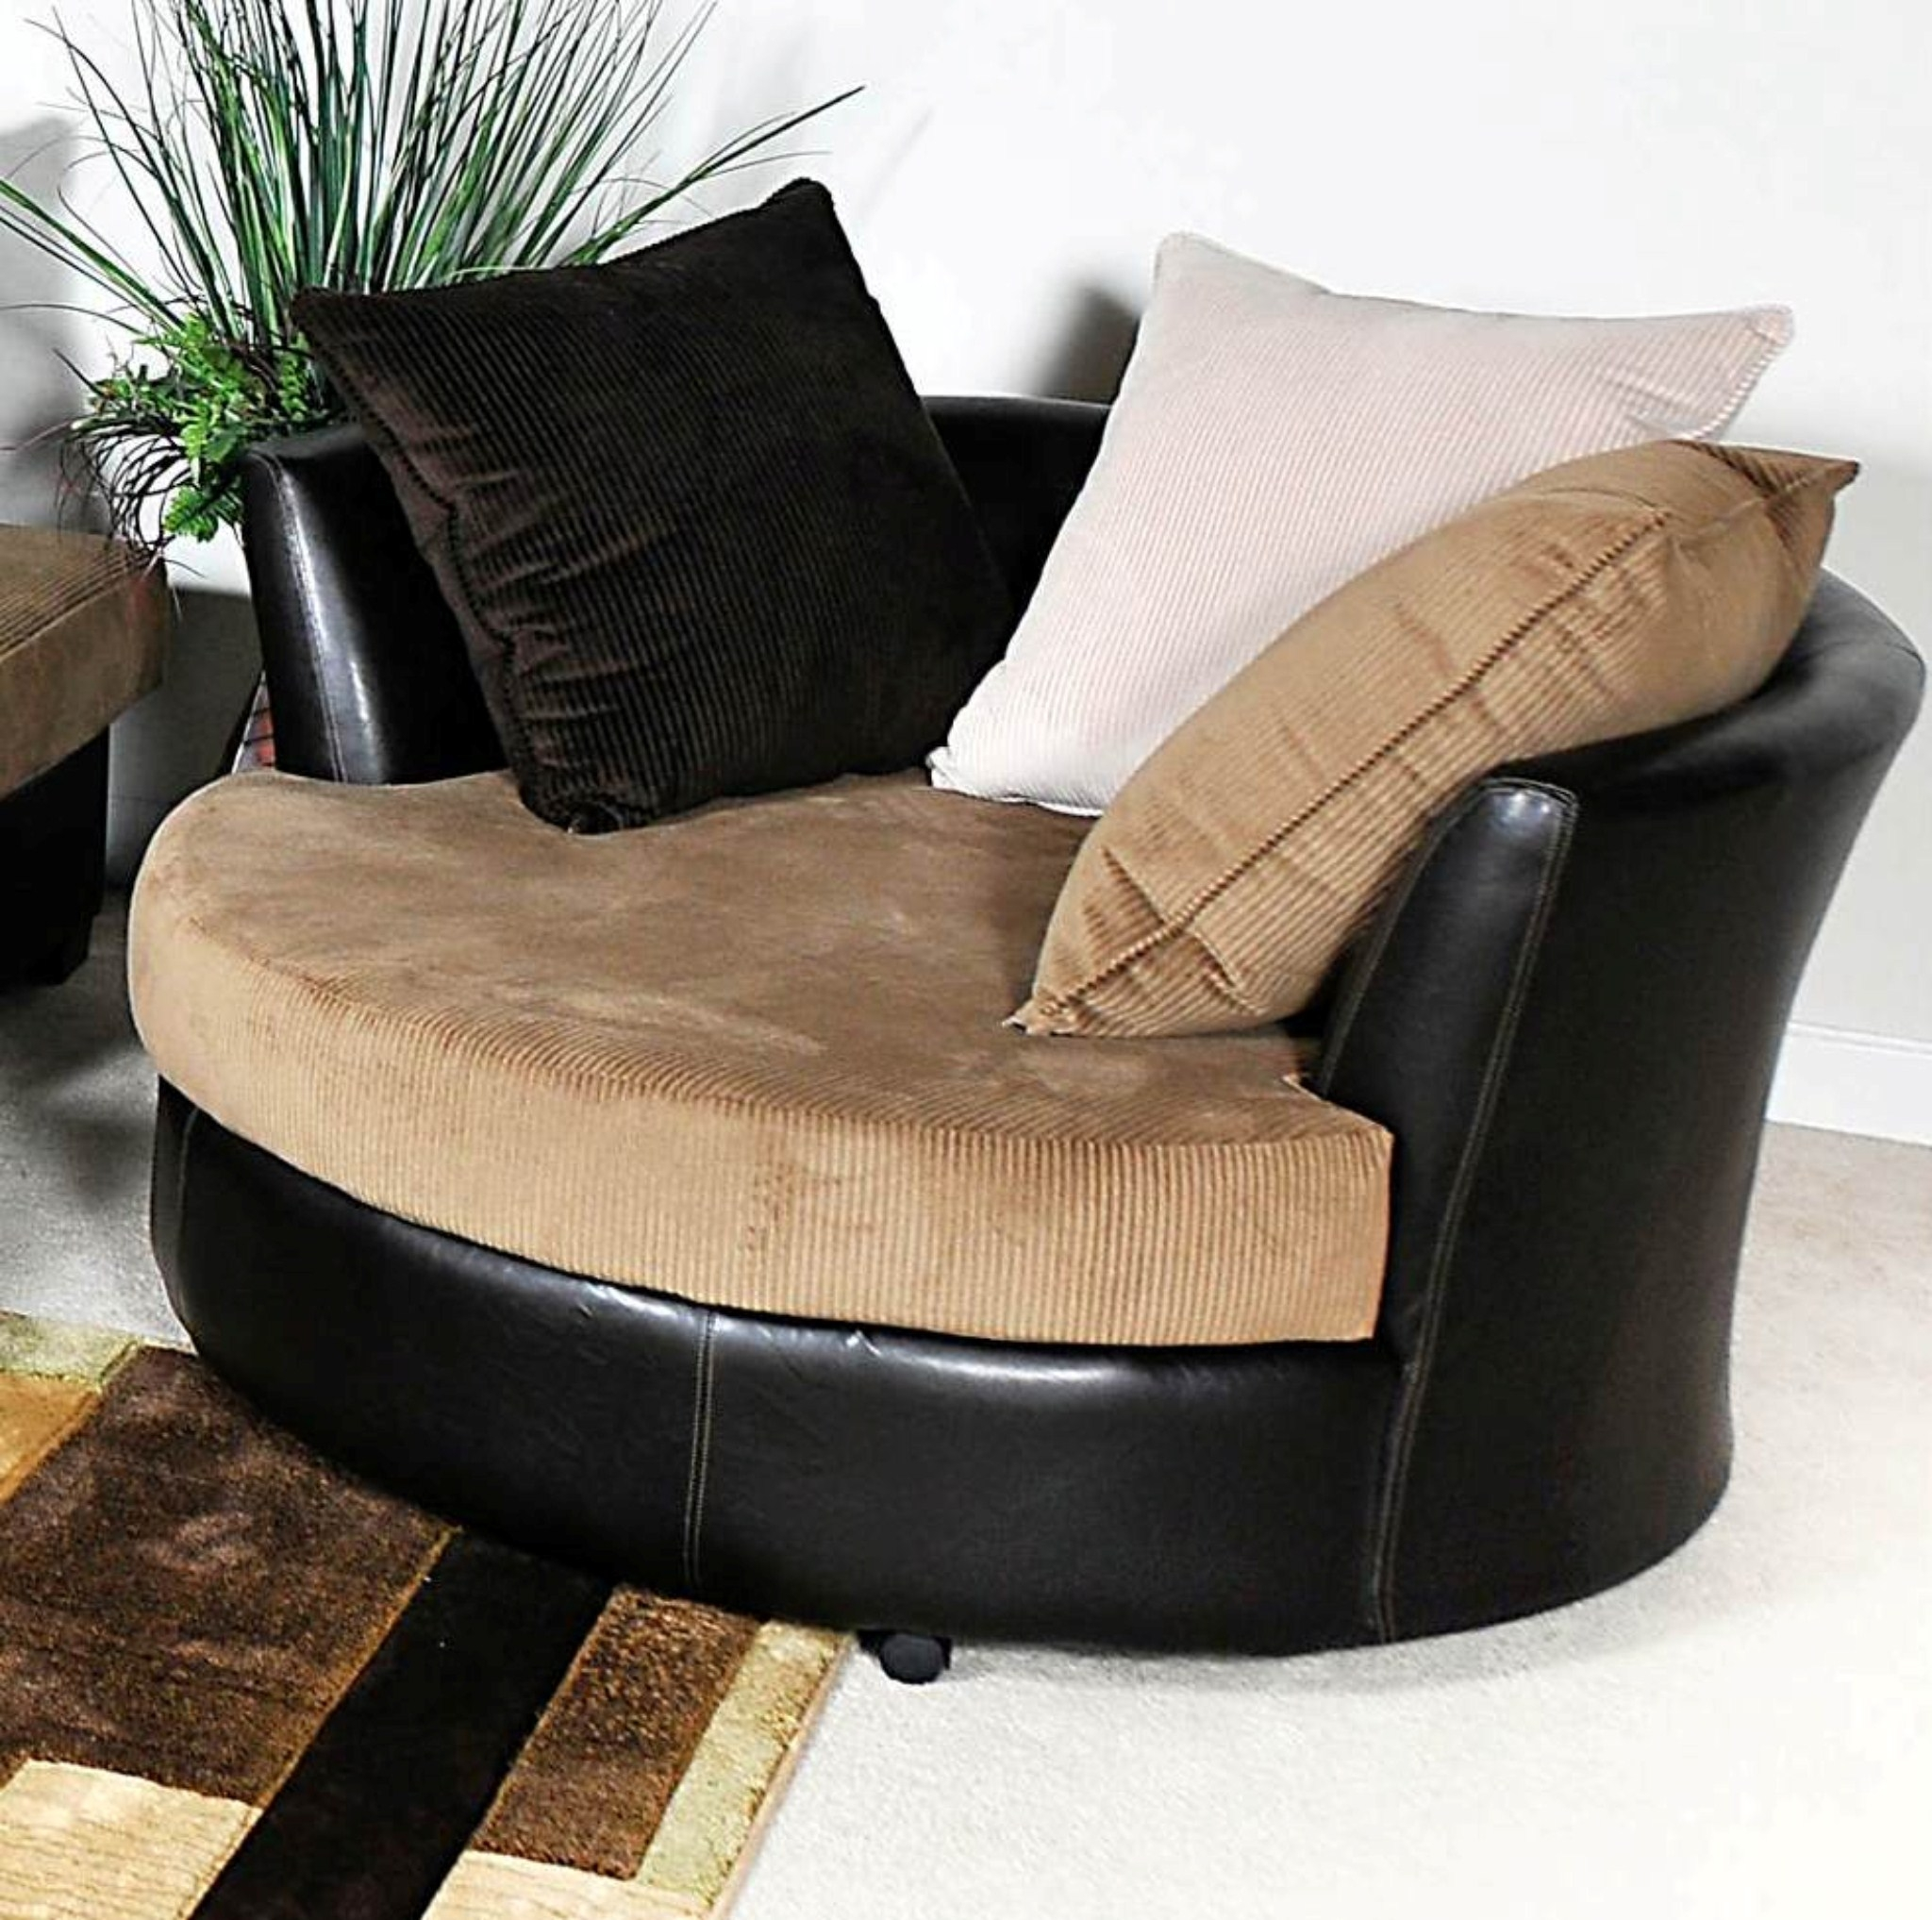 Large Round Cuddler Swivel Chair Home Chair Designs Regarding Round Swivel Sofa Chairs (Image 4 of 15)